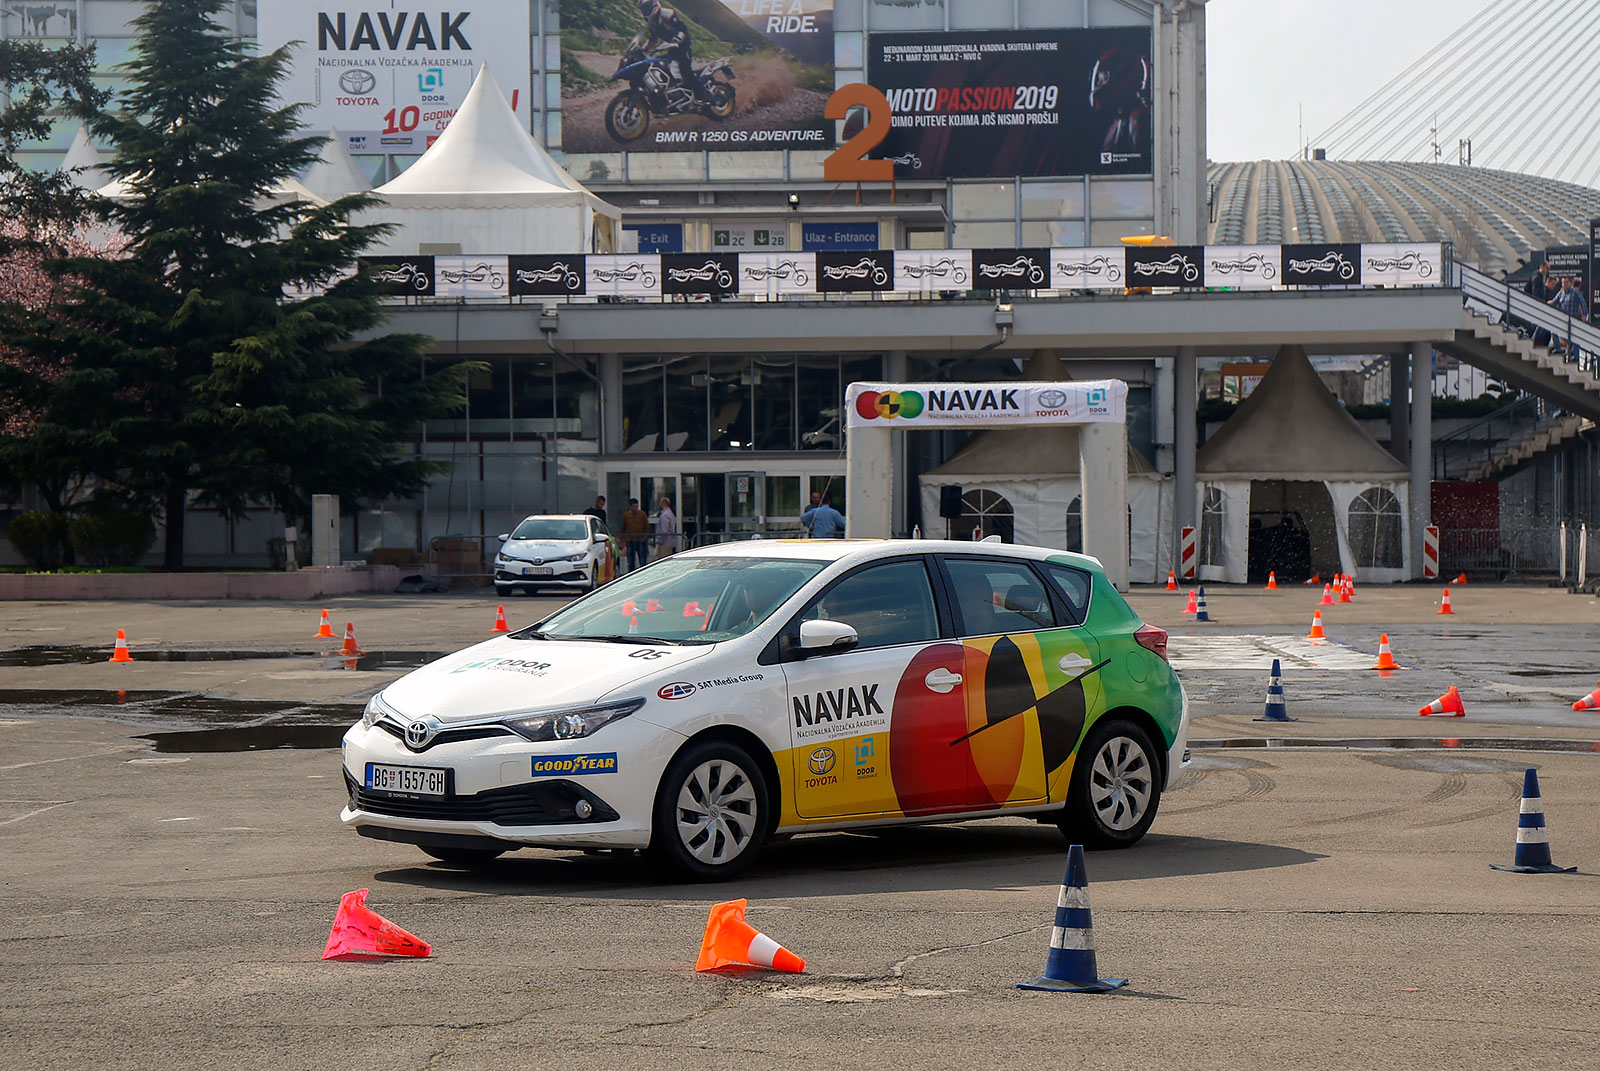 NAVAK practically educates drivers about safe driving techniques on a daily basis